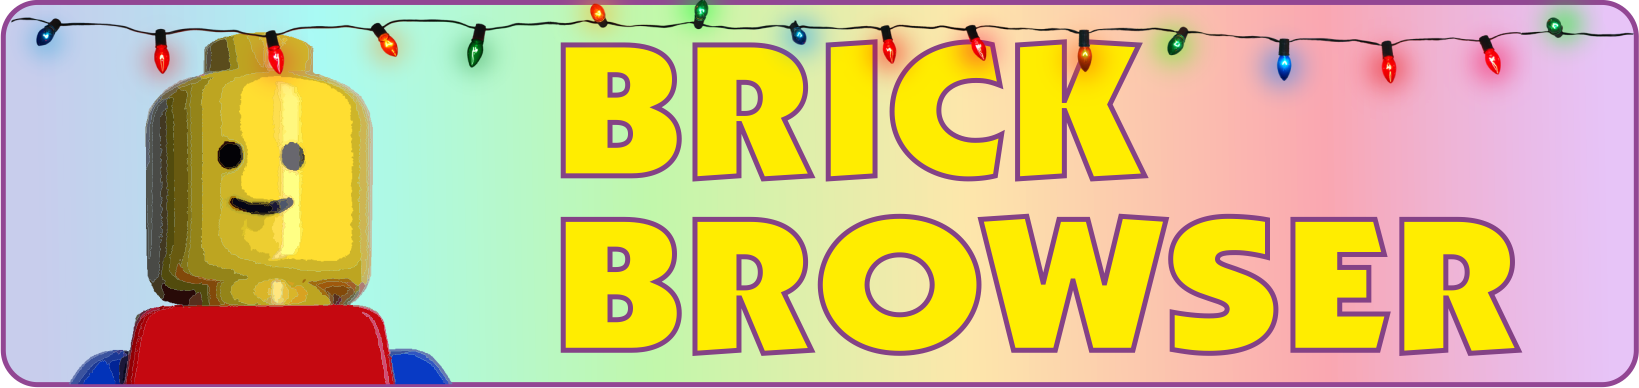 Brickbrowser